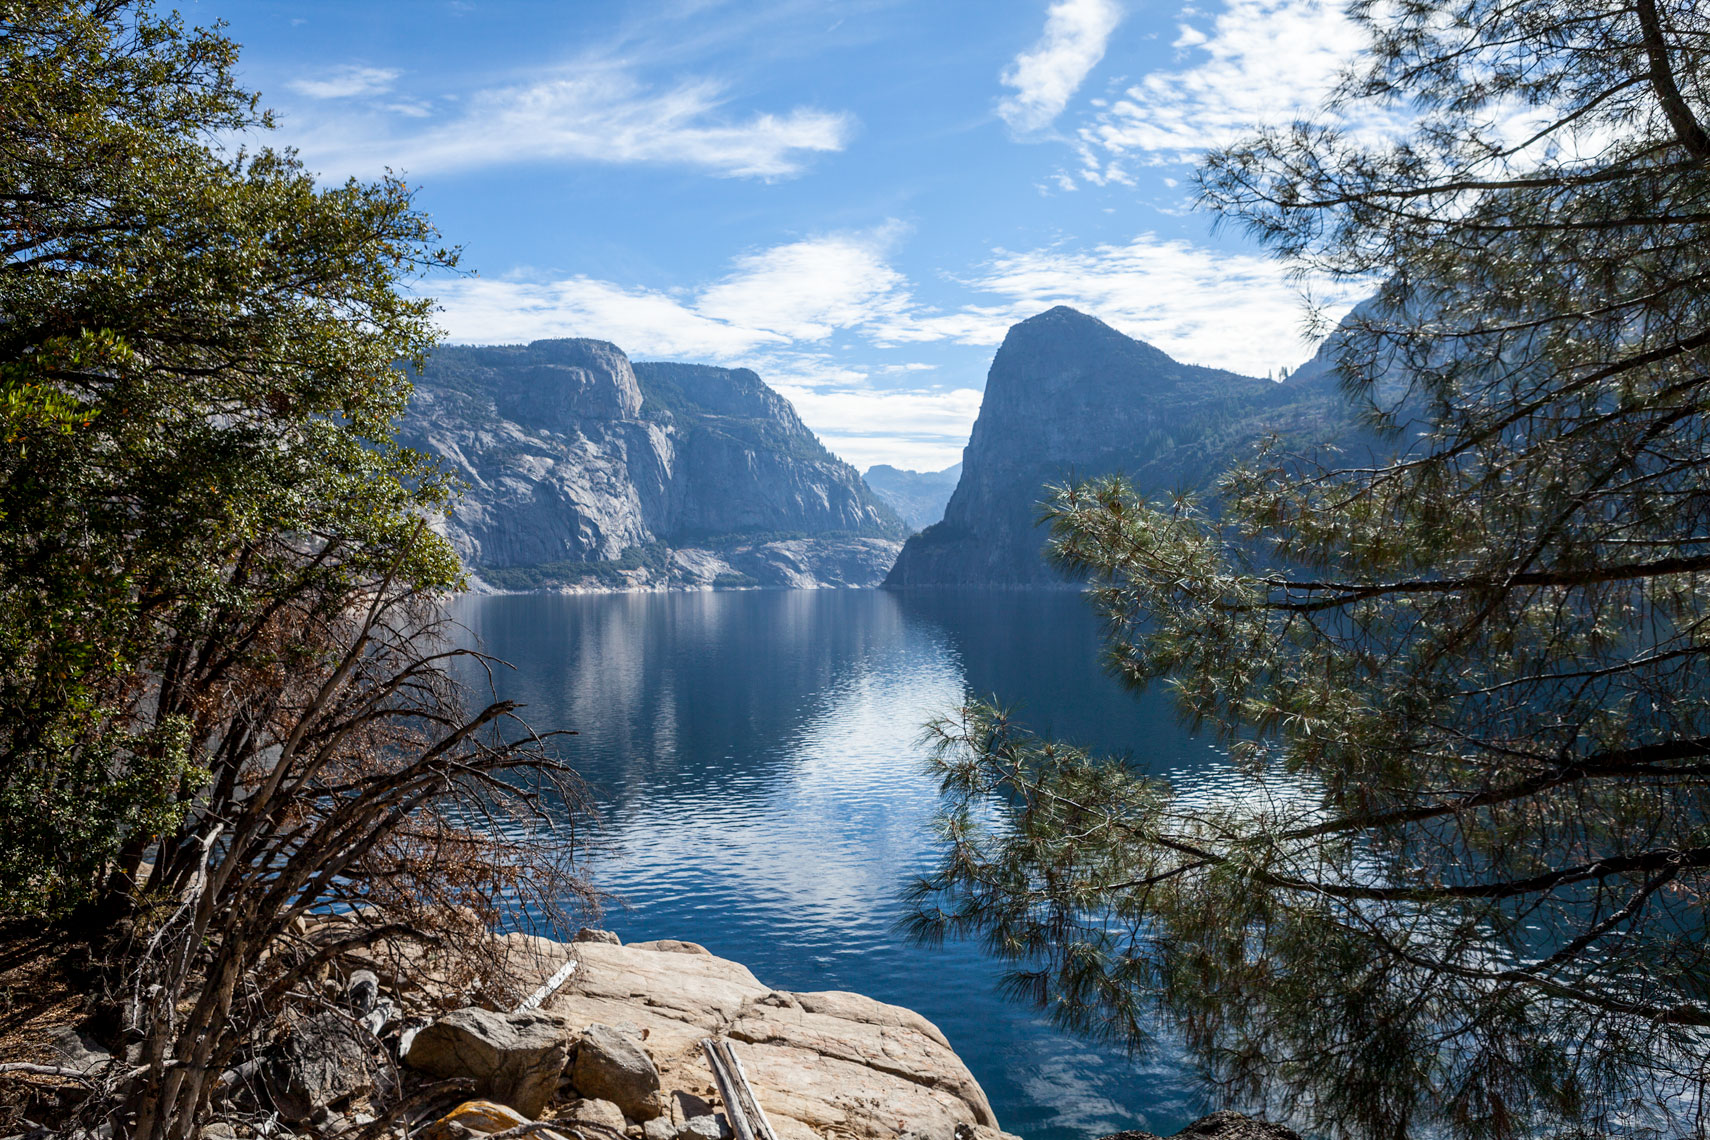 Hetch Hetchy Reservior in Yosemite National Park